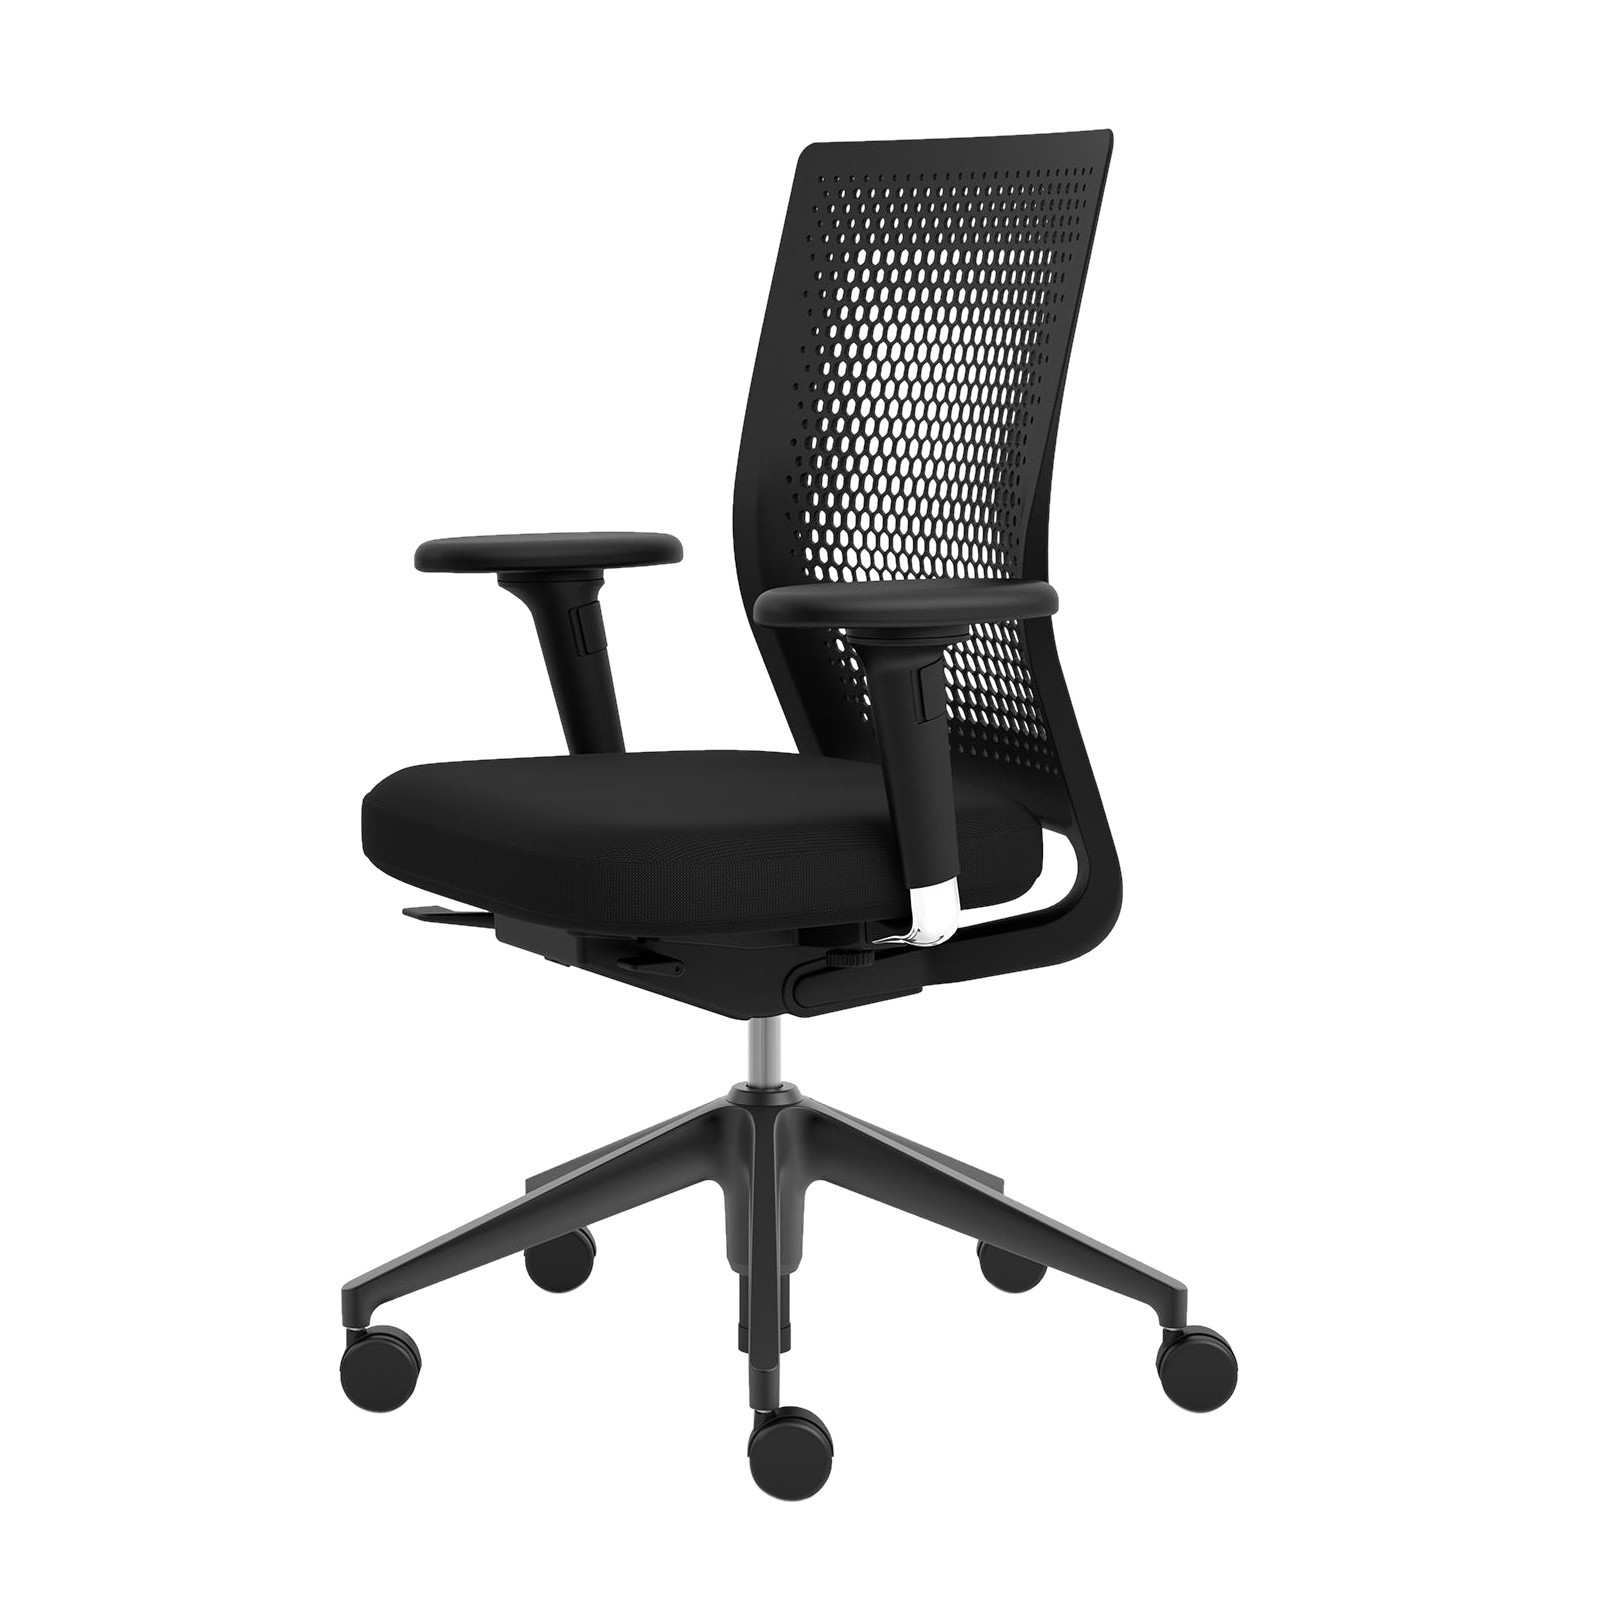 Vitra ID Air Office Chair With 9D Armrests